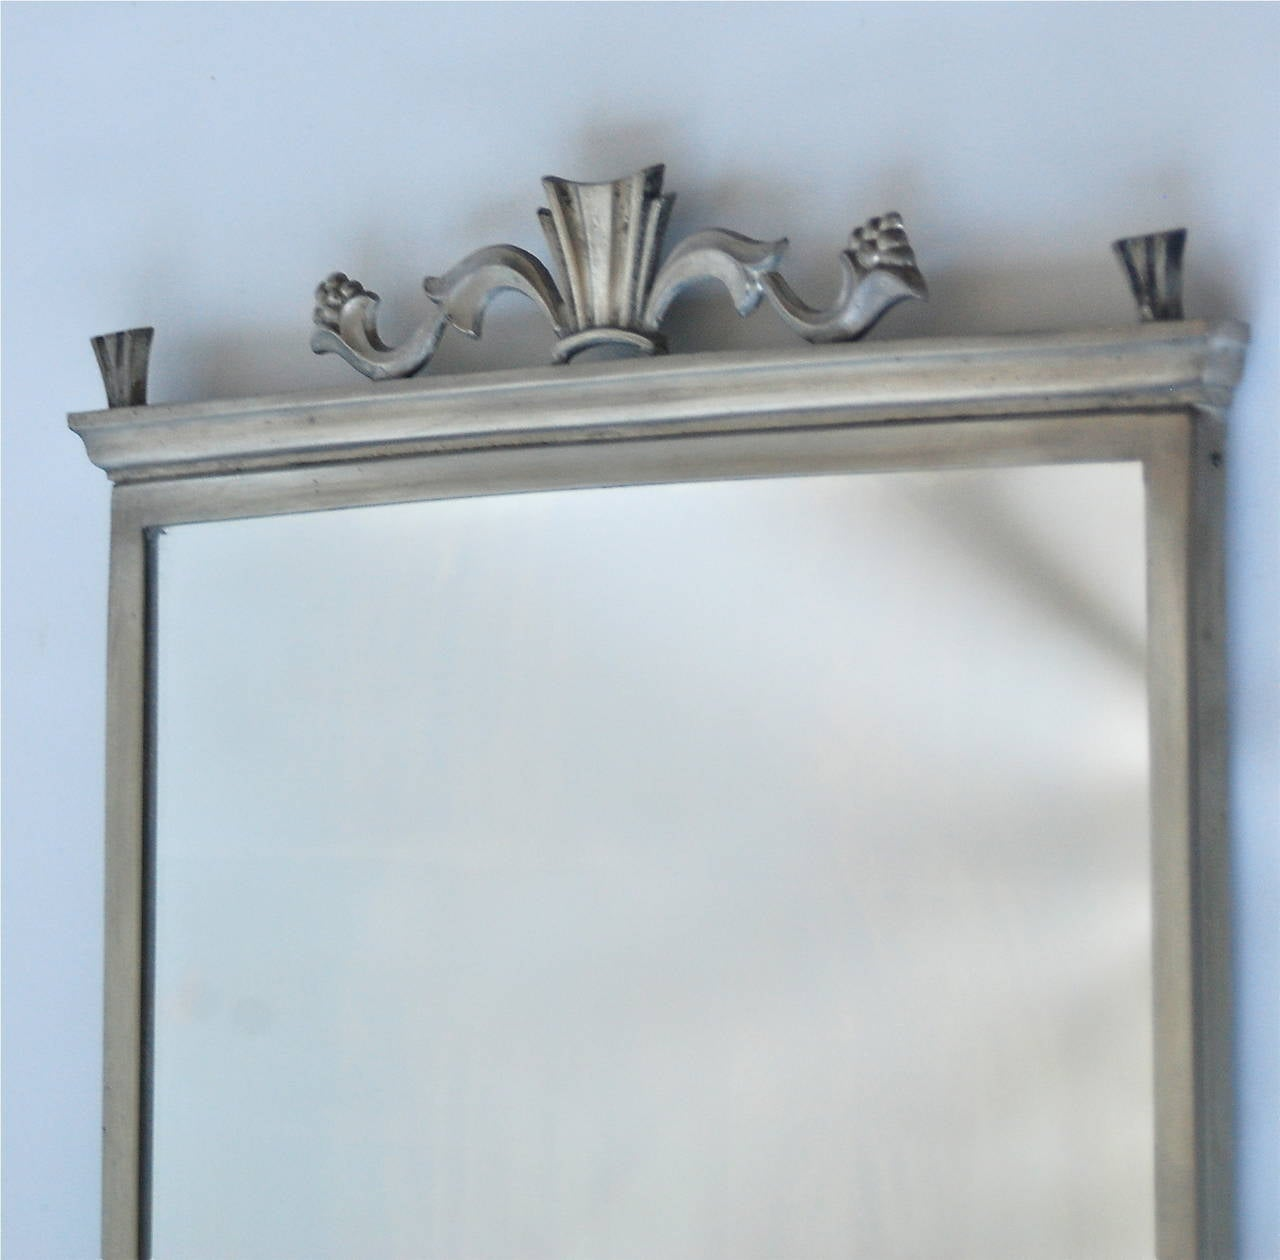 A mirror, pewter, made by Herman Bergman Art Foundry, Stockholm, 1931.